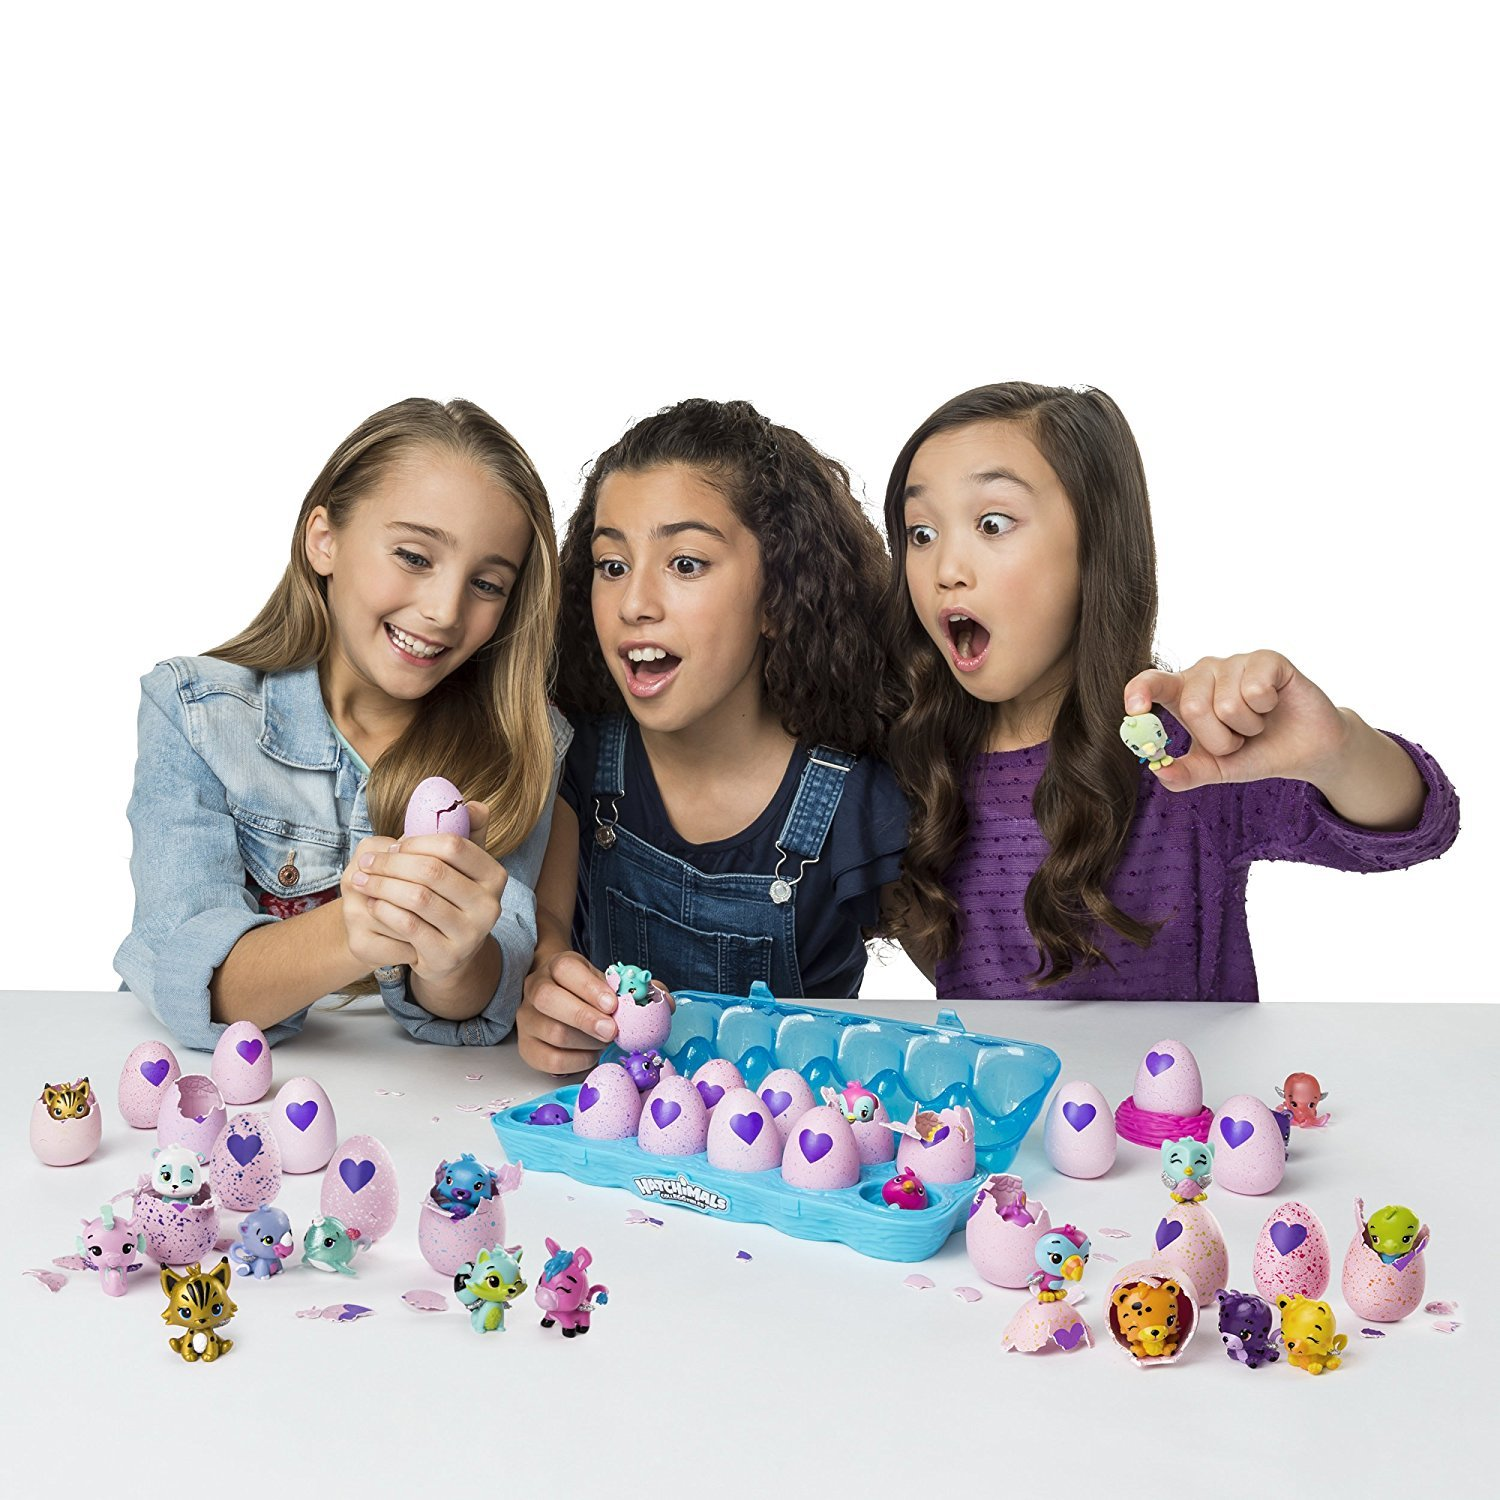 Hatchimals Colleggtibles Season 2 Gift Pack! ( Includes Egg Carton 12 Pack, 5 Pack, 2 Pack with Nest) Total of x19 by Hatchimals (Image #3)